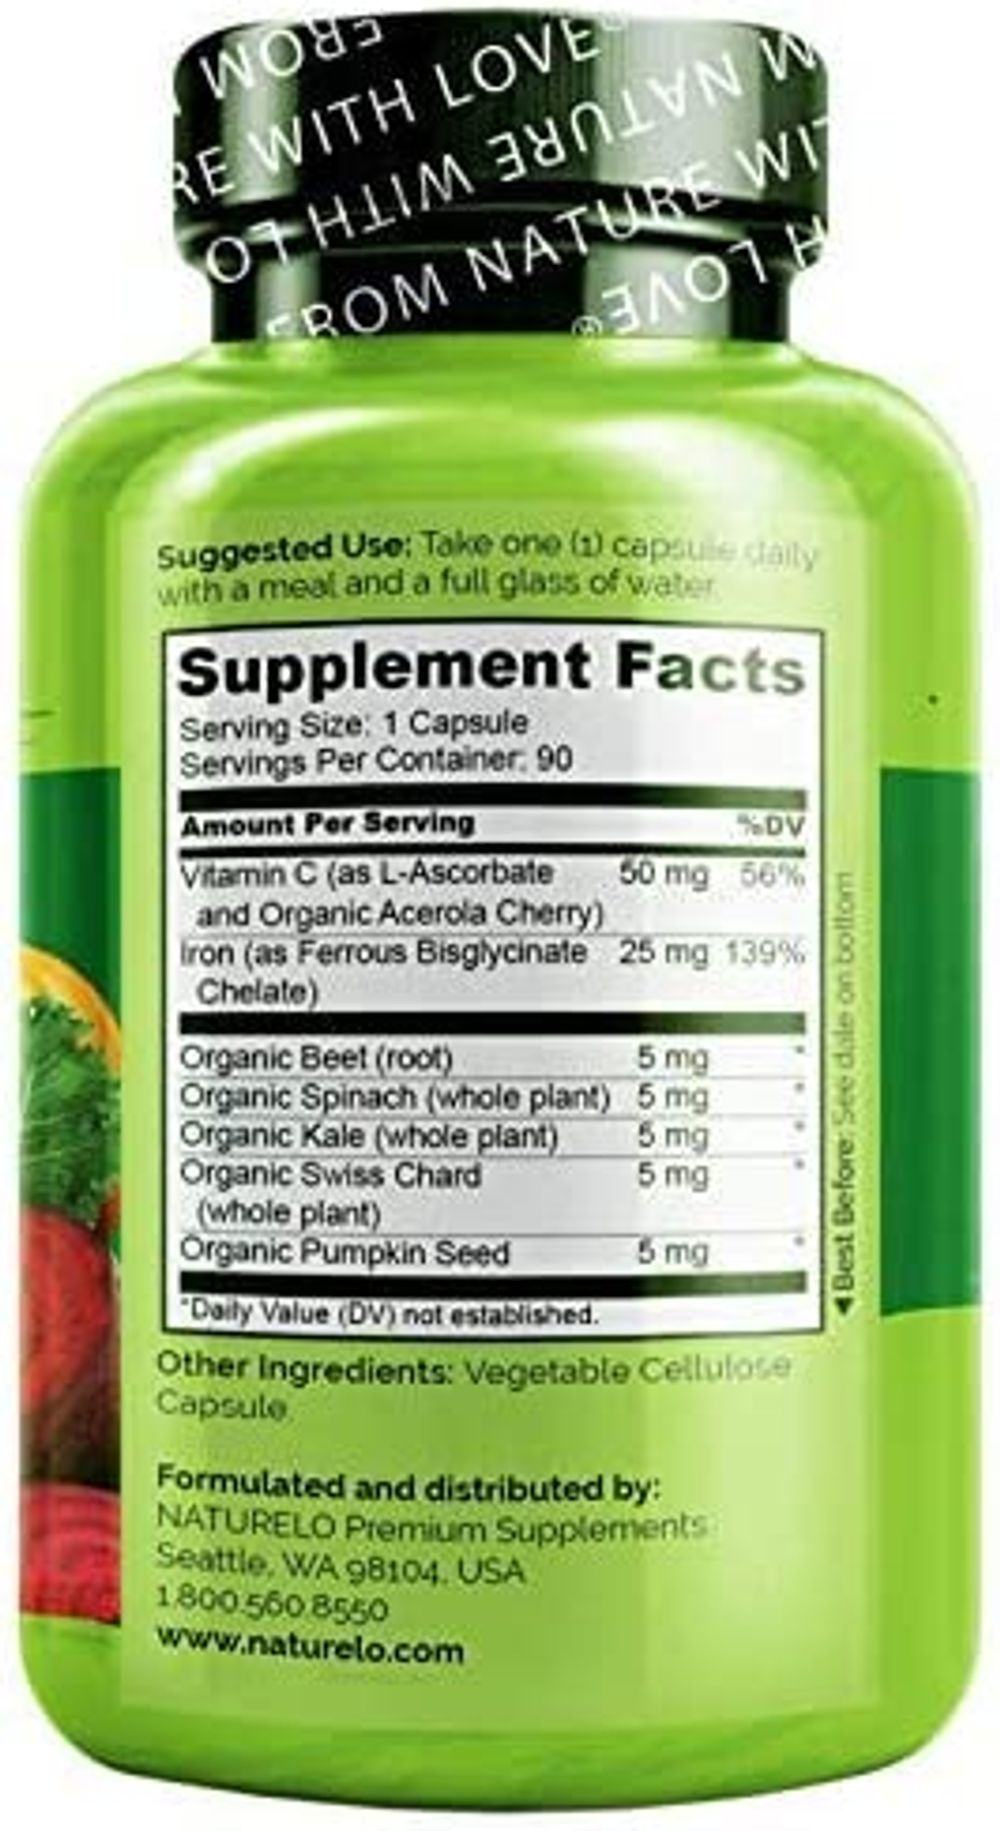 NATURELO Vegan Iron Supplement with Vitamin C and Organic Whole Foods - Gentle Iron Pills for Women & Men w/ Iron Deficiency Including Pregnancy, Anemia and Vegan Diets - 90 Mini Capsules